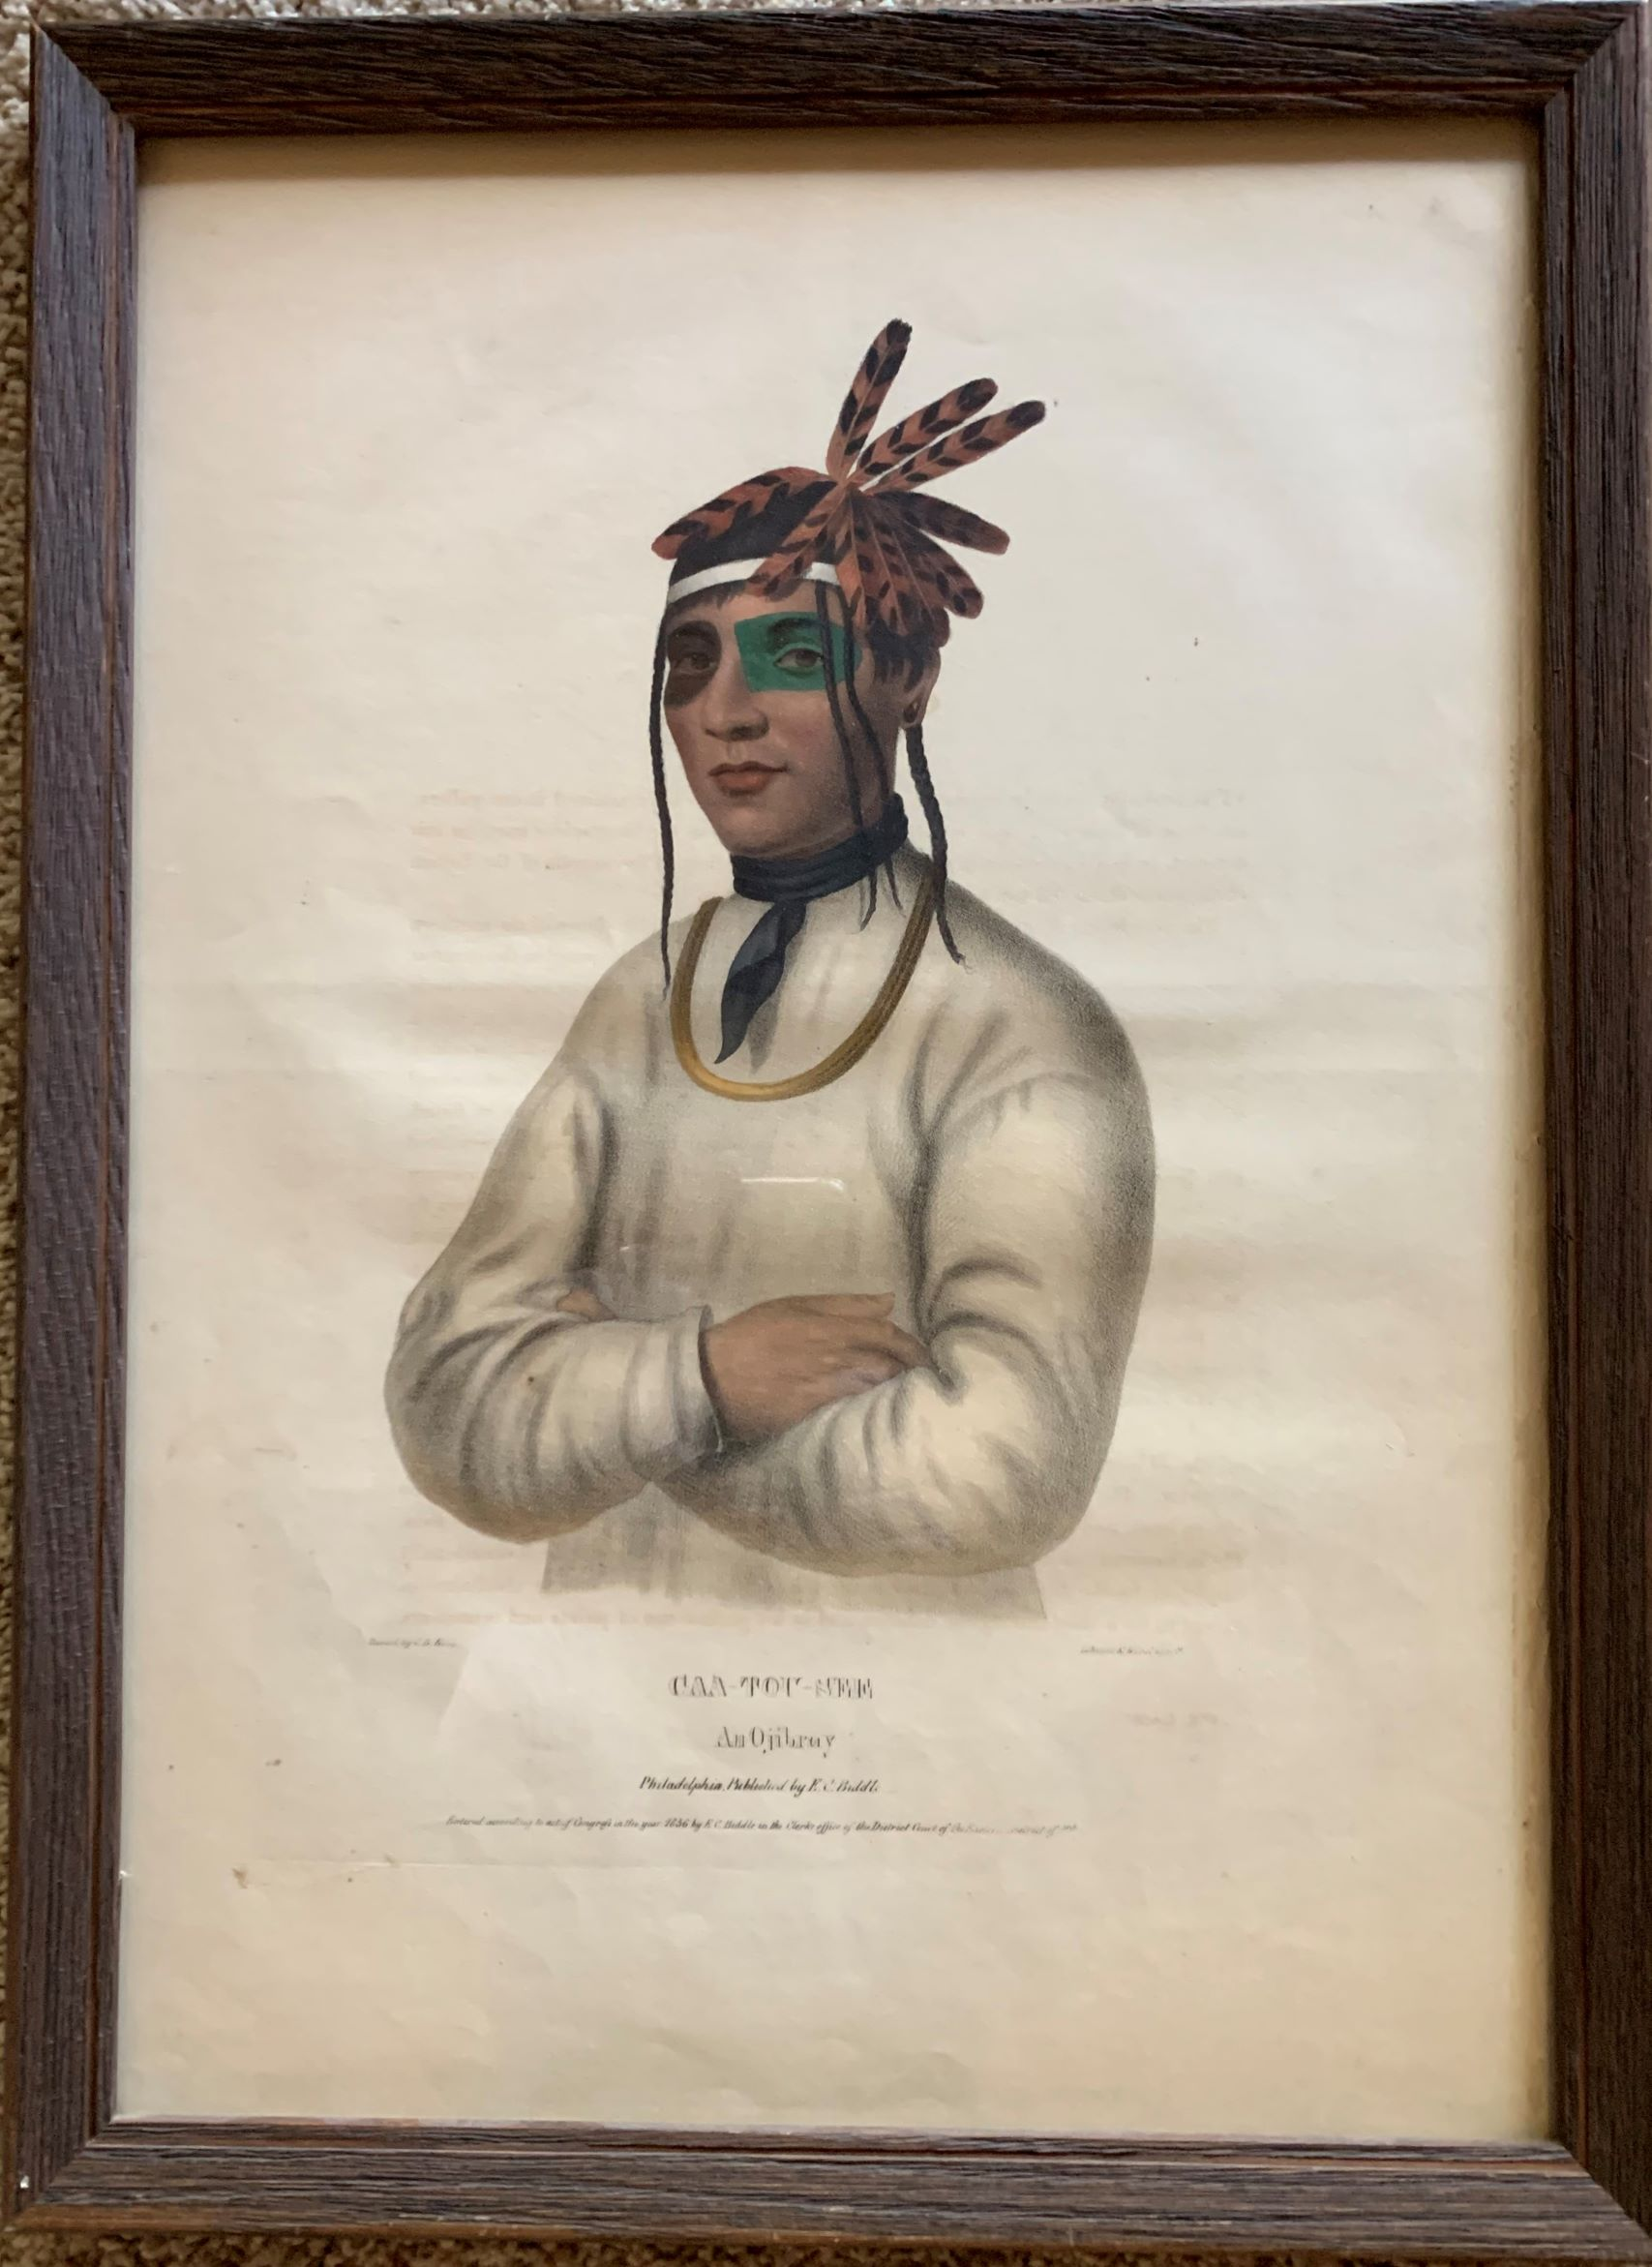 Image for Caa-Tou-See, an Ojibray. (Ojibwe)  Original hand-colored lithographic plate, highlighted with gum arabic. From the painting by Charles Bird King.